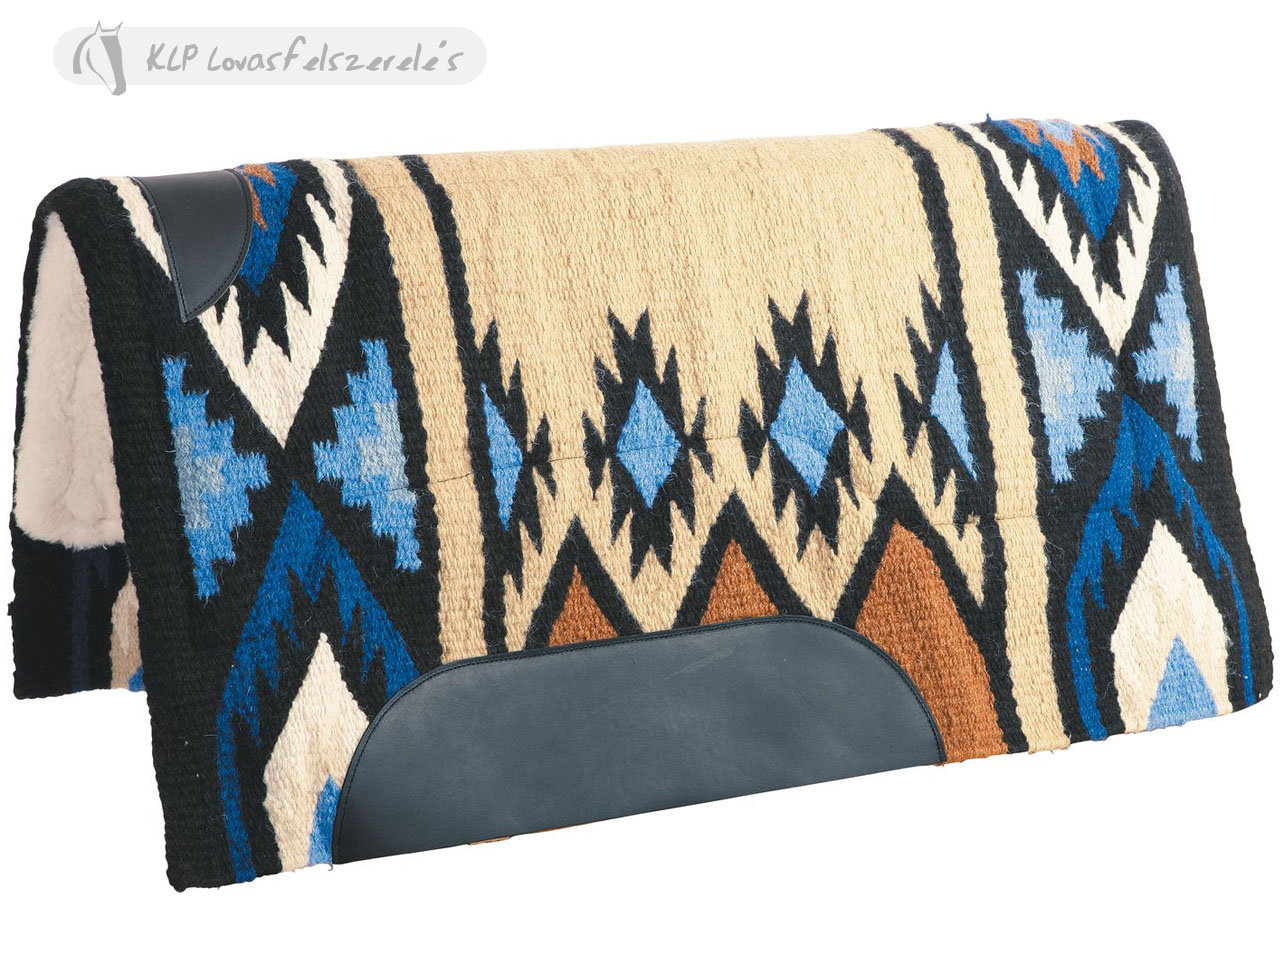 Western Saddle Pad New Zealand, L-Pro West